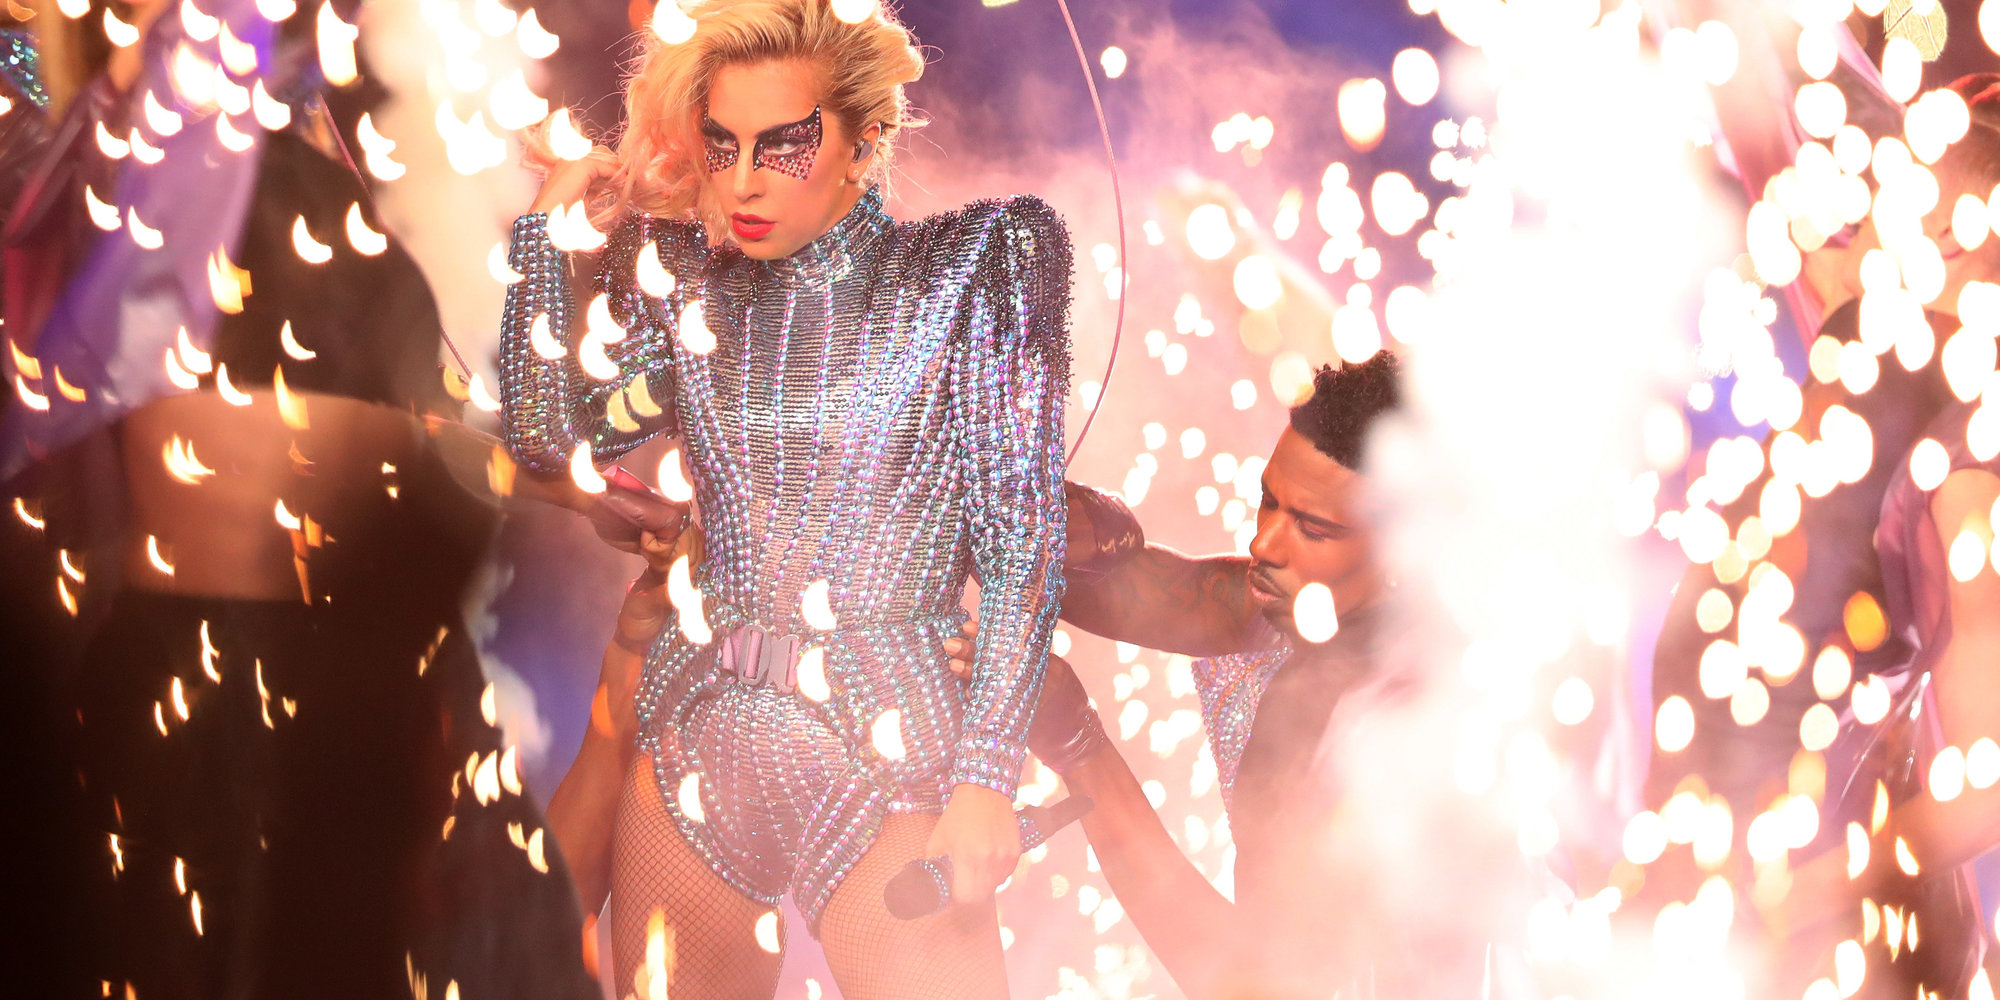 HOUSTON, TX - FEBRUARY 05:  Lady Gaga performs during the Pepsi Zero Sugar Super Bowl 51 Halftime Show at NRG Stadium on February 5, 2017 in Houston, Texas.  (Photo by Tom Pennington/Getty Images) born to dare by tudor Lady Gaga The New Face for Born to Dare by TUDOR lady gaga superbowl 2017 born to dare by tudor Lady Gaga The New Face for Born to Dare by TUDOR lady gaga superbowl 2017